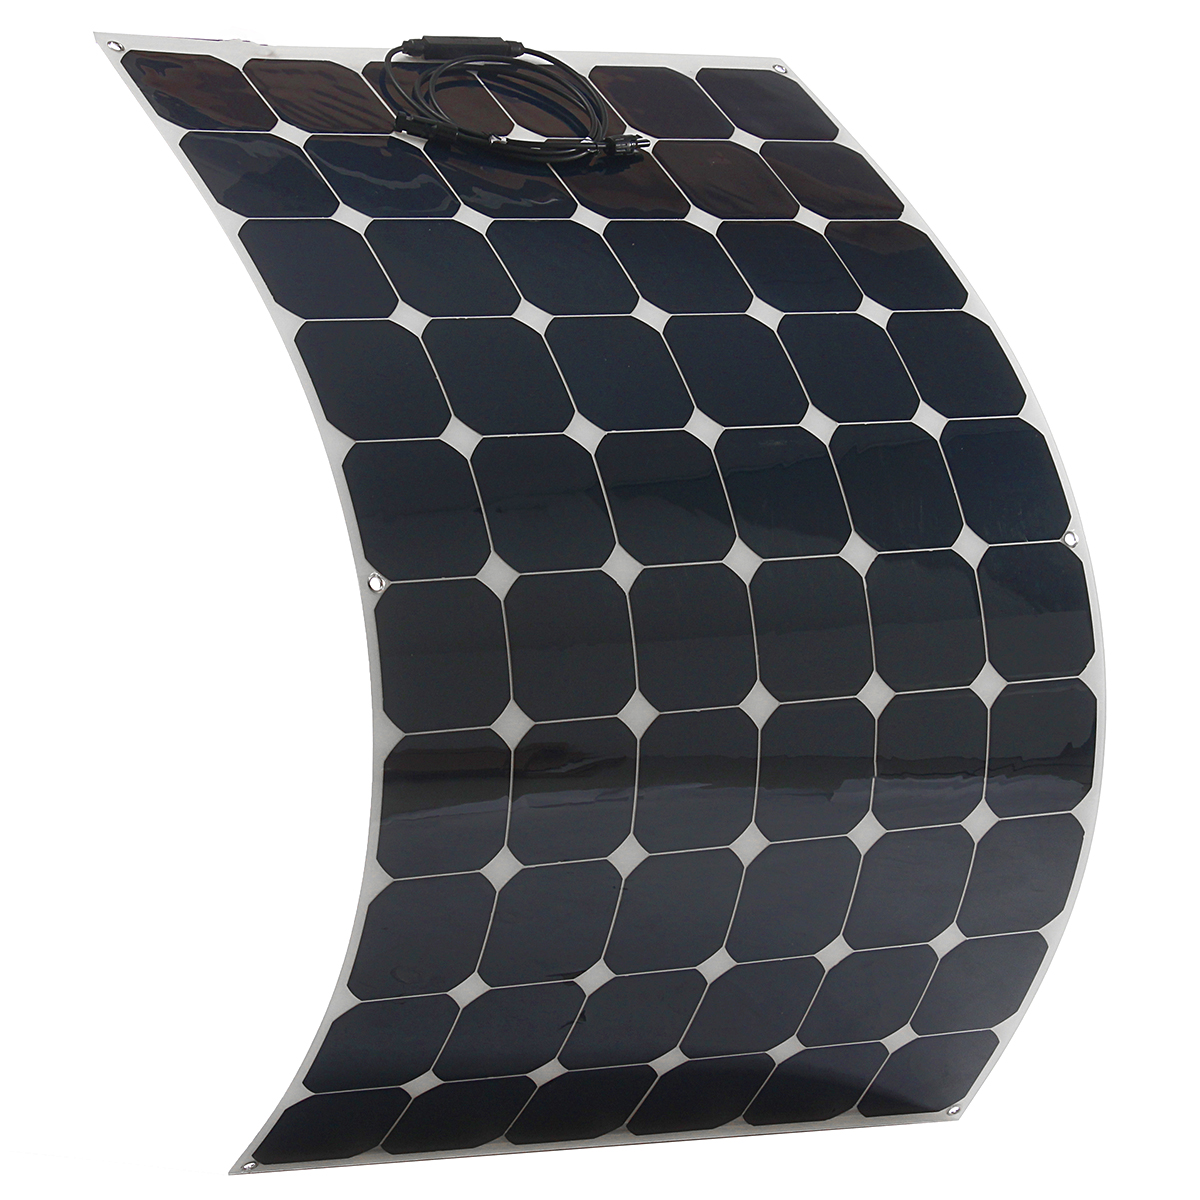 Elfeland SP-31 190W 33V Sunpower Flexible Solar Panel & 1.5m Cable For Home RV Boat